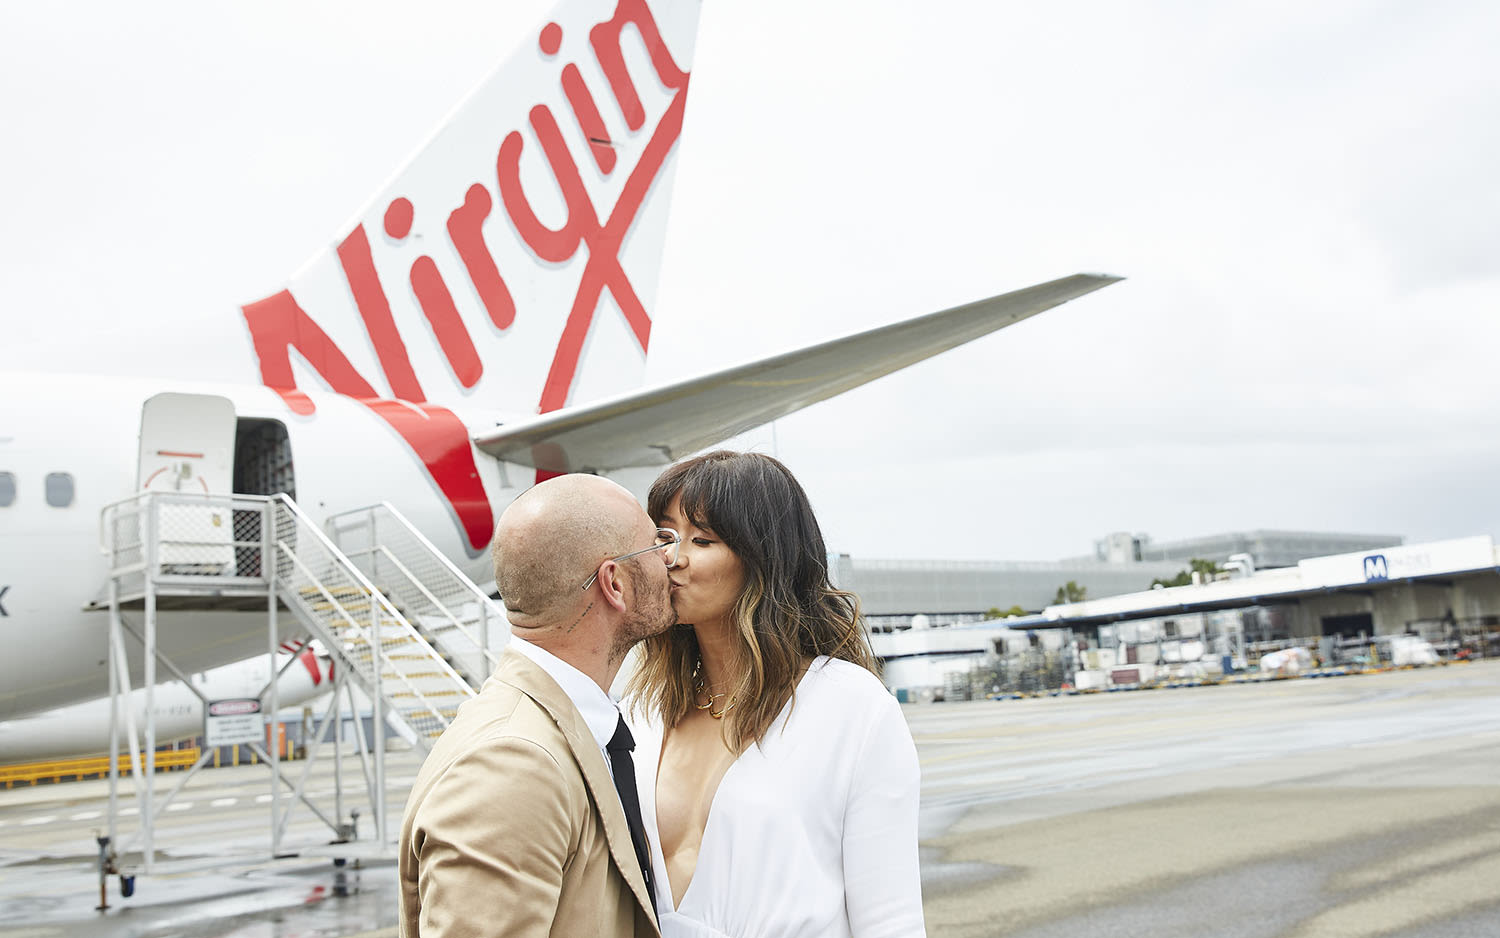 Luke and Elaine Serdar share a kiss outside a Virgin Australia aircraft after their onboard wedding